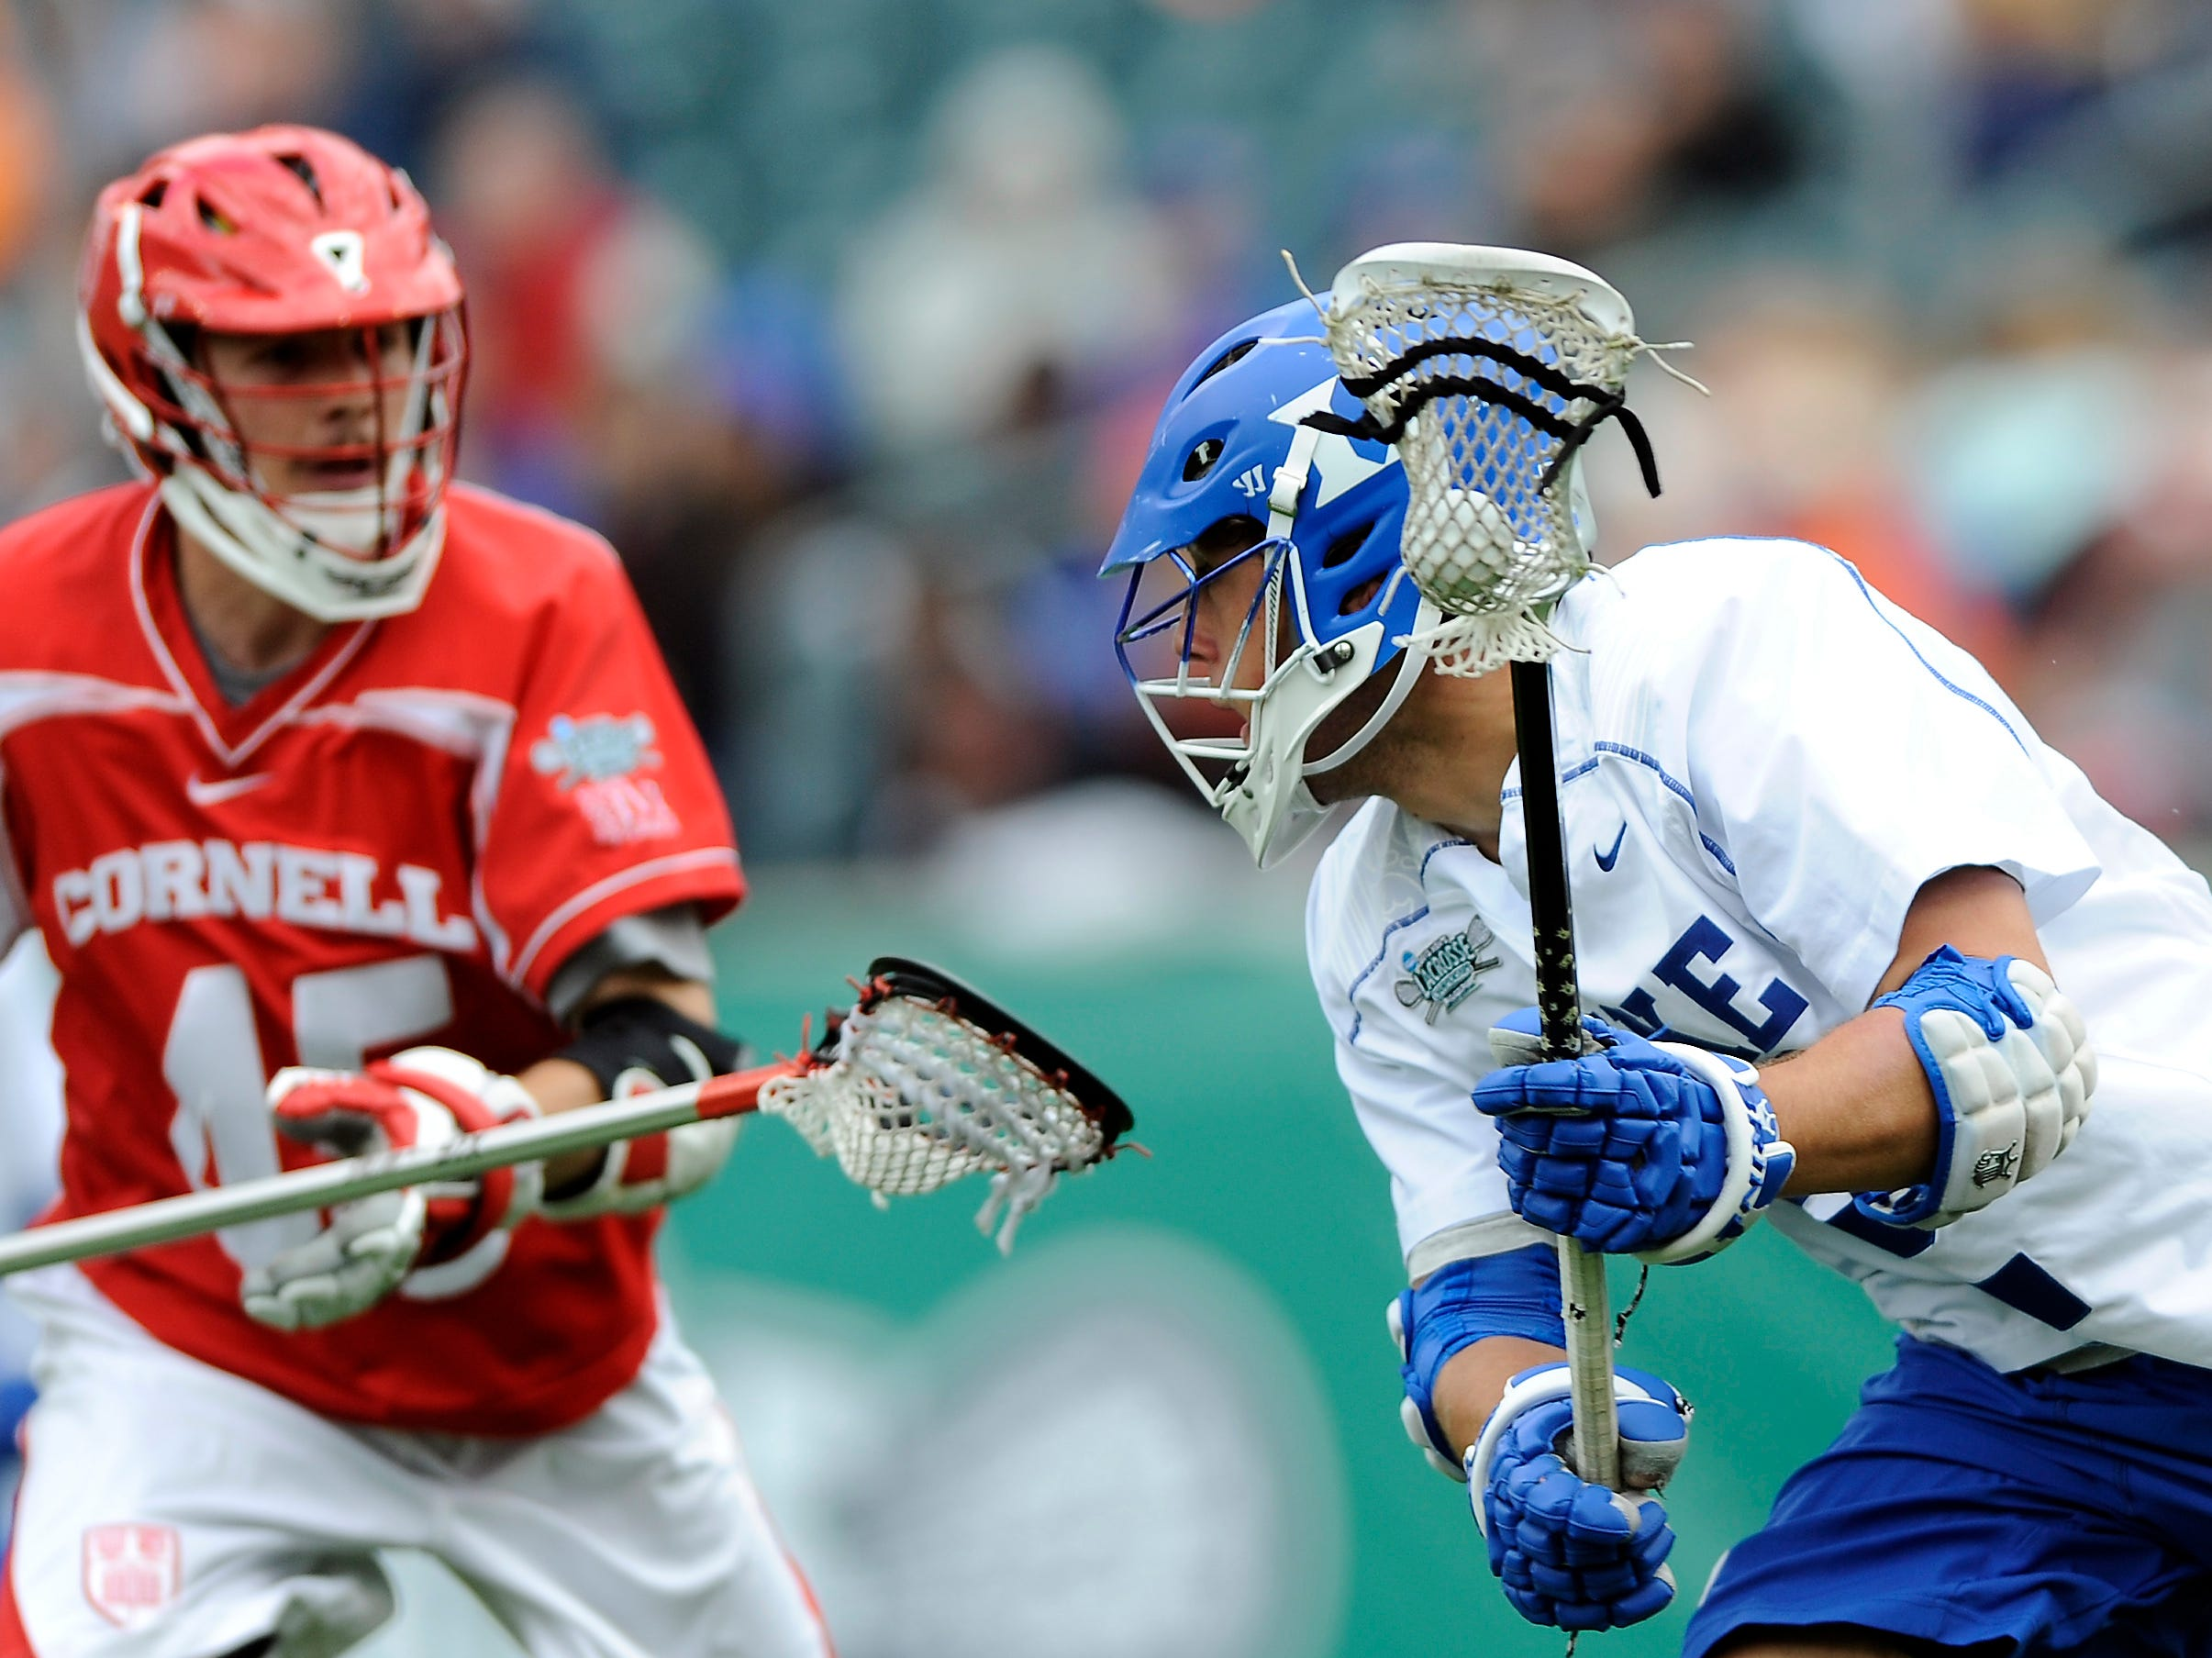 Duke's David Lawson, right, brings the ball past Cornell's Jason Noble (45) during the second half of an NCAA college Division 1 semifinal lacrosse game on Saturday, May 25, 2013, in Philadelphia. Duke won 16-14.